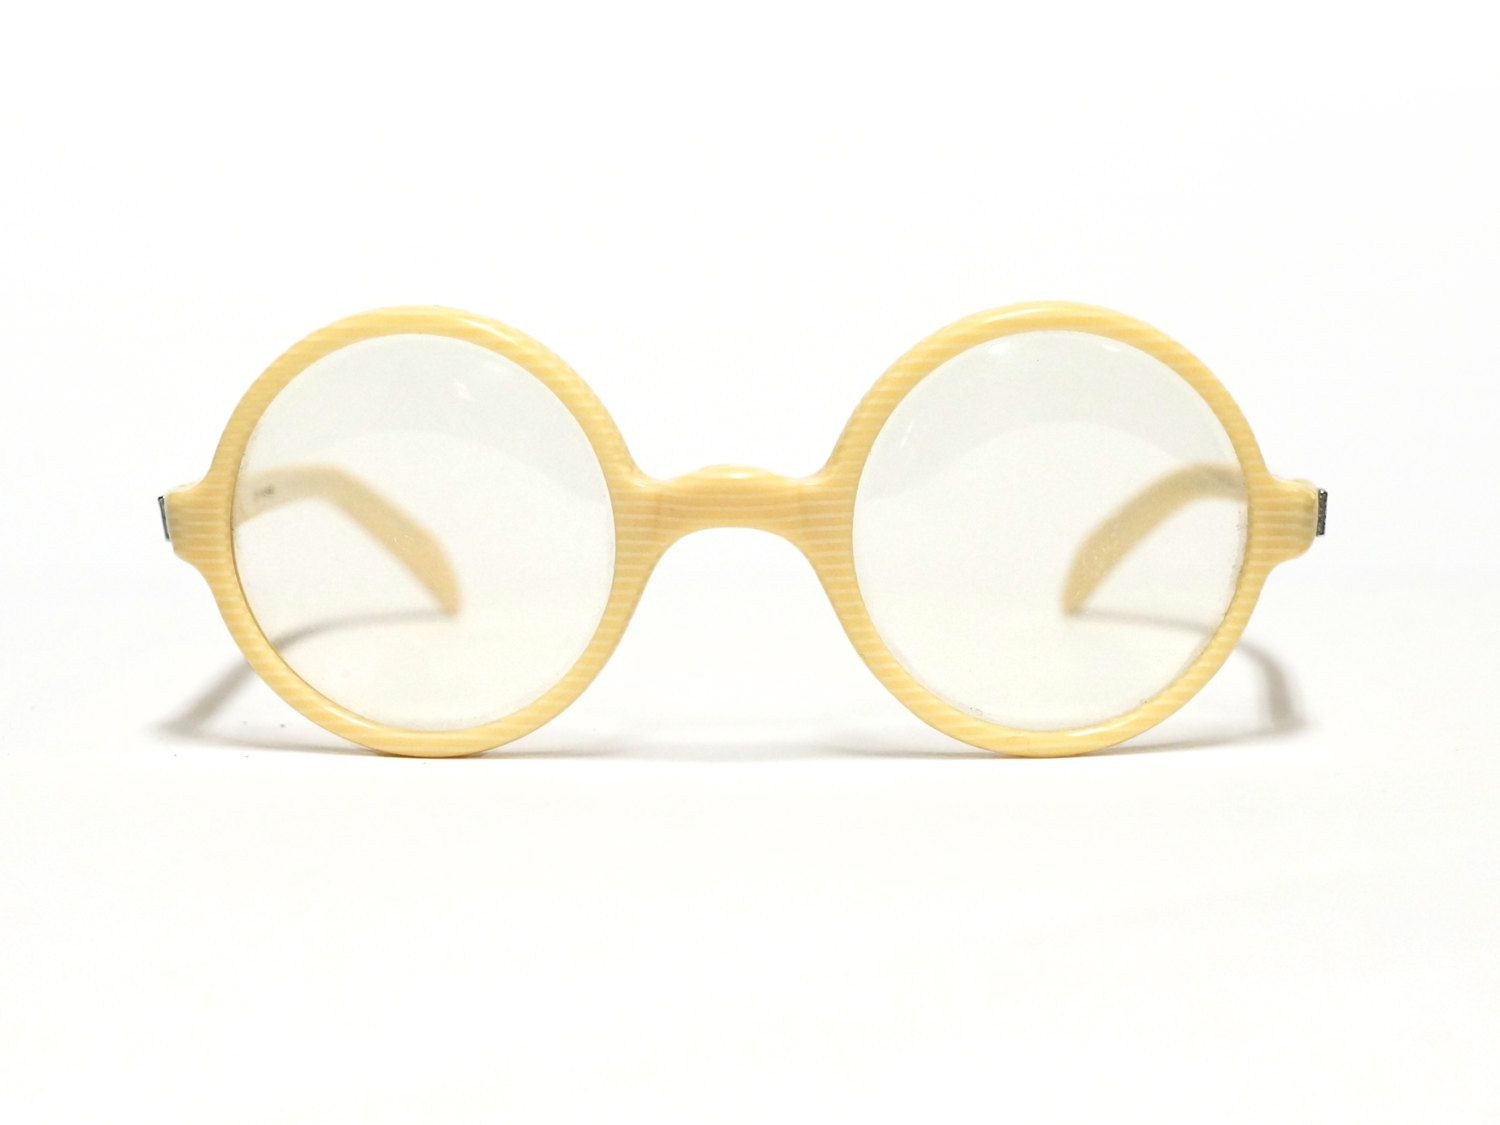 Amor Vintage Eyeglasses - panto style - round eyewear - French eyeglasses in new old stock condition